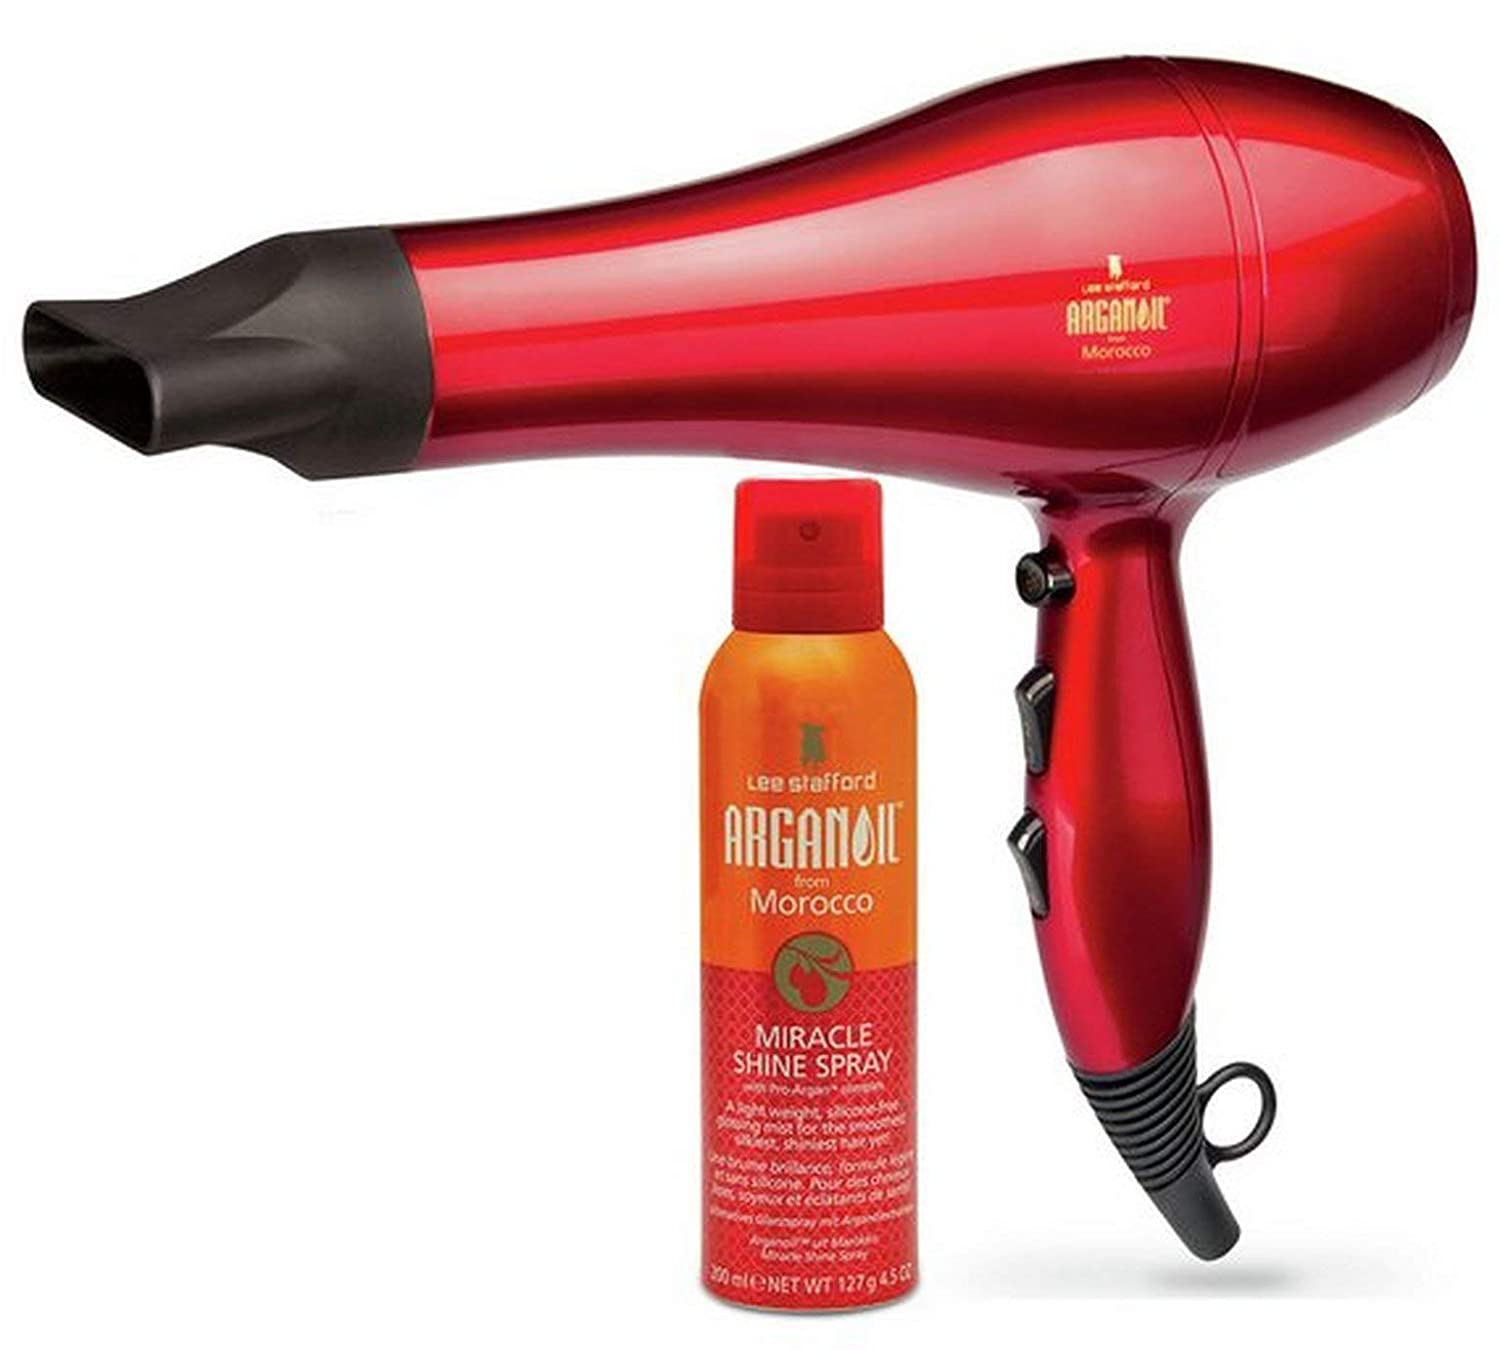 Lee Stafford Argan Oil Hair Dryer/Blow Dryer 2200W with Shine Spray - Professional AC Ionic Hairdryer - Blow Dry Faster & Nourish: Salon Quality & Moroccan Oil Infused For Silky Smooth Hair - 3m Cord